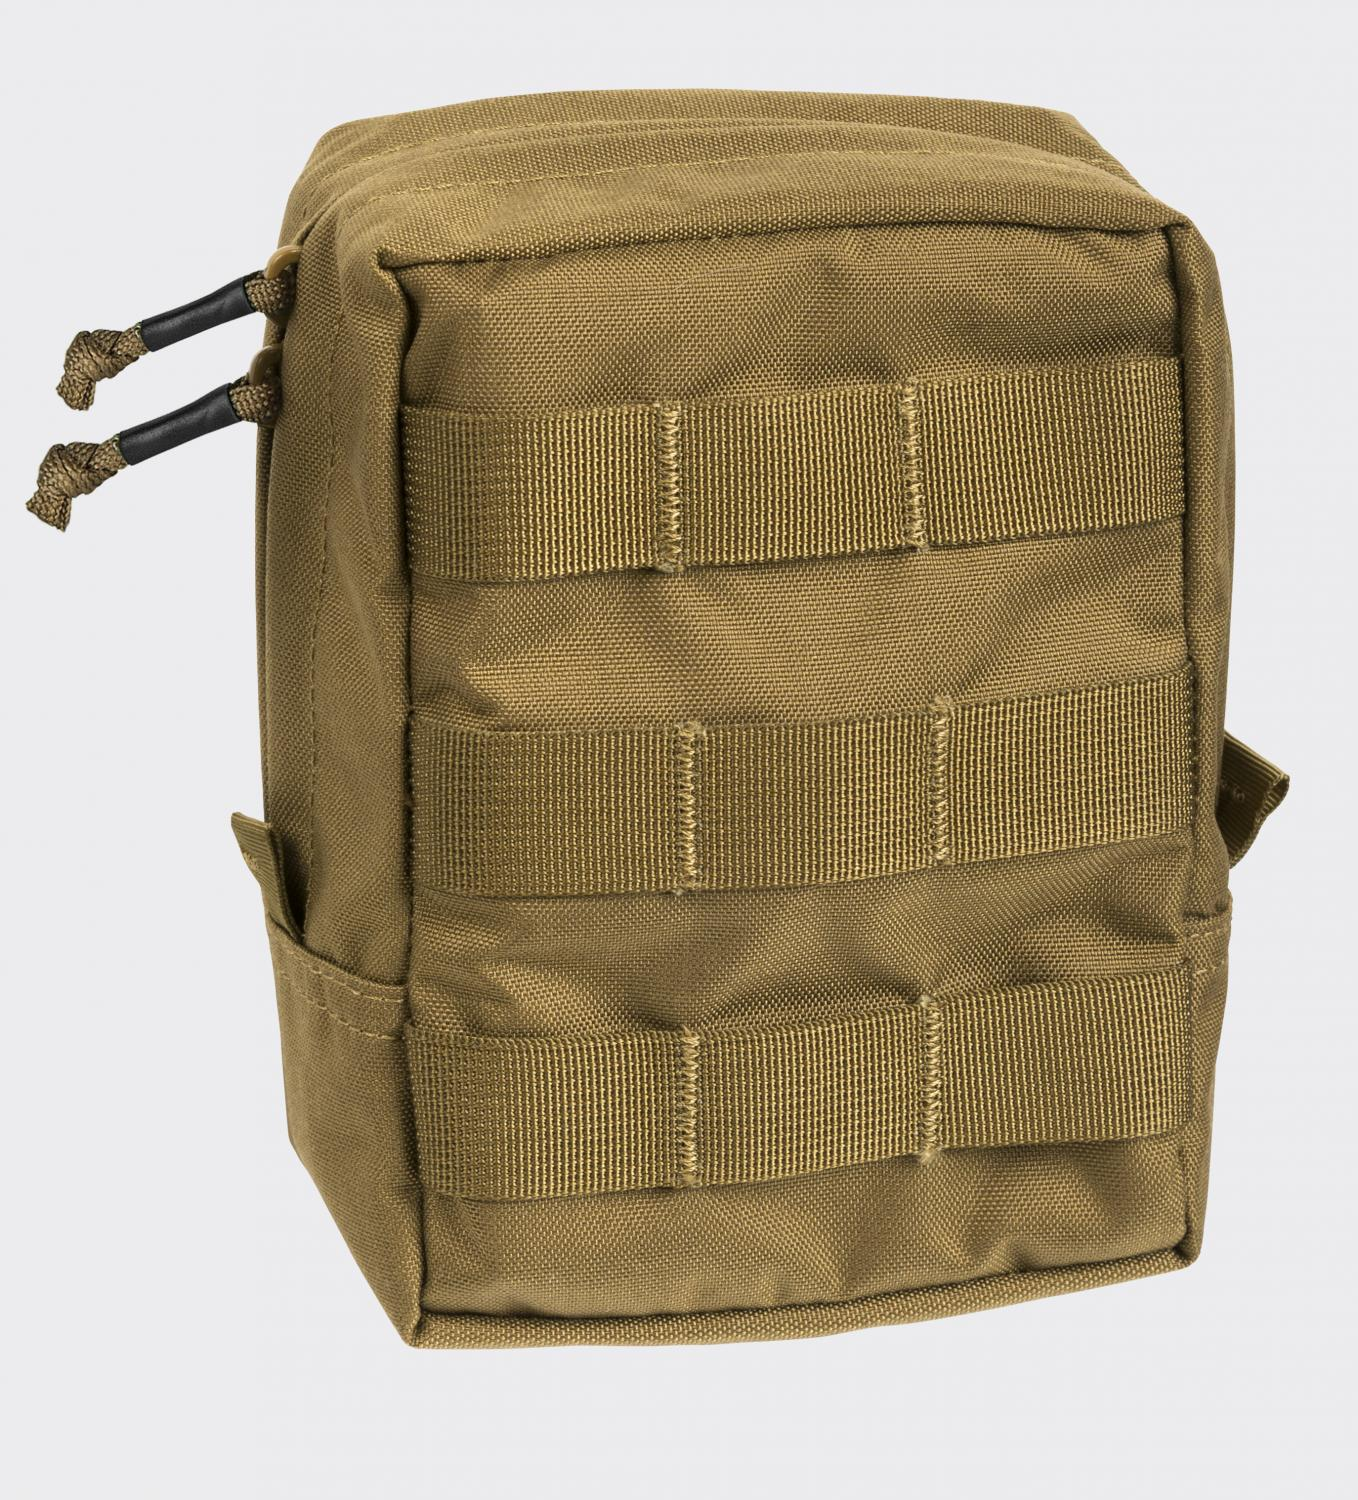 GENERAL PURPOSE CARGO® Pouch [U.05] - Cordura Coyote